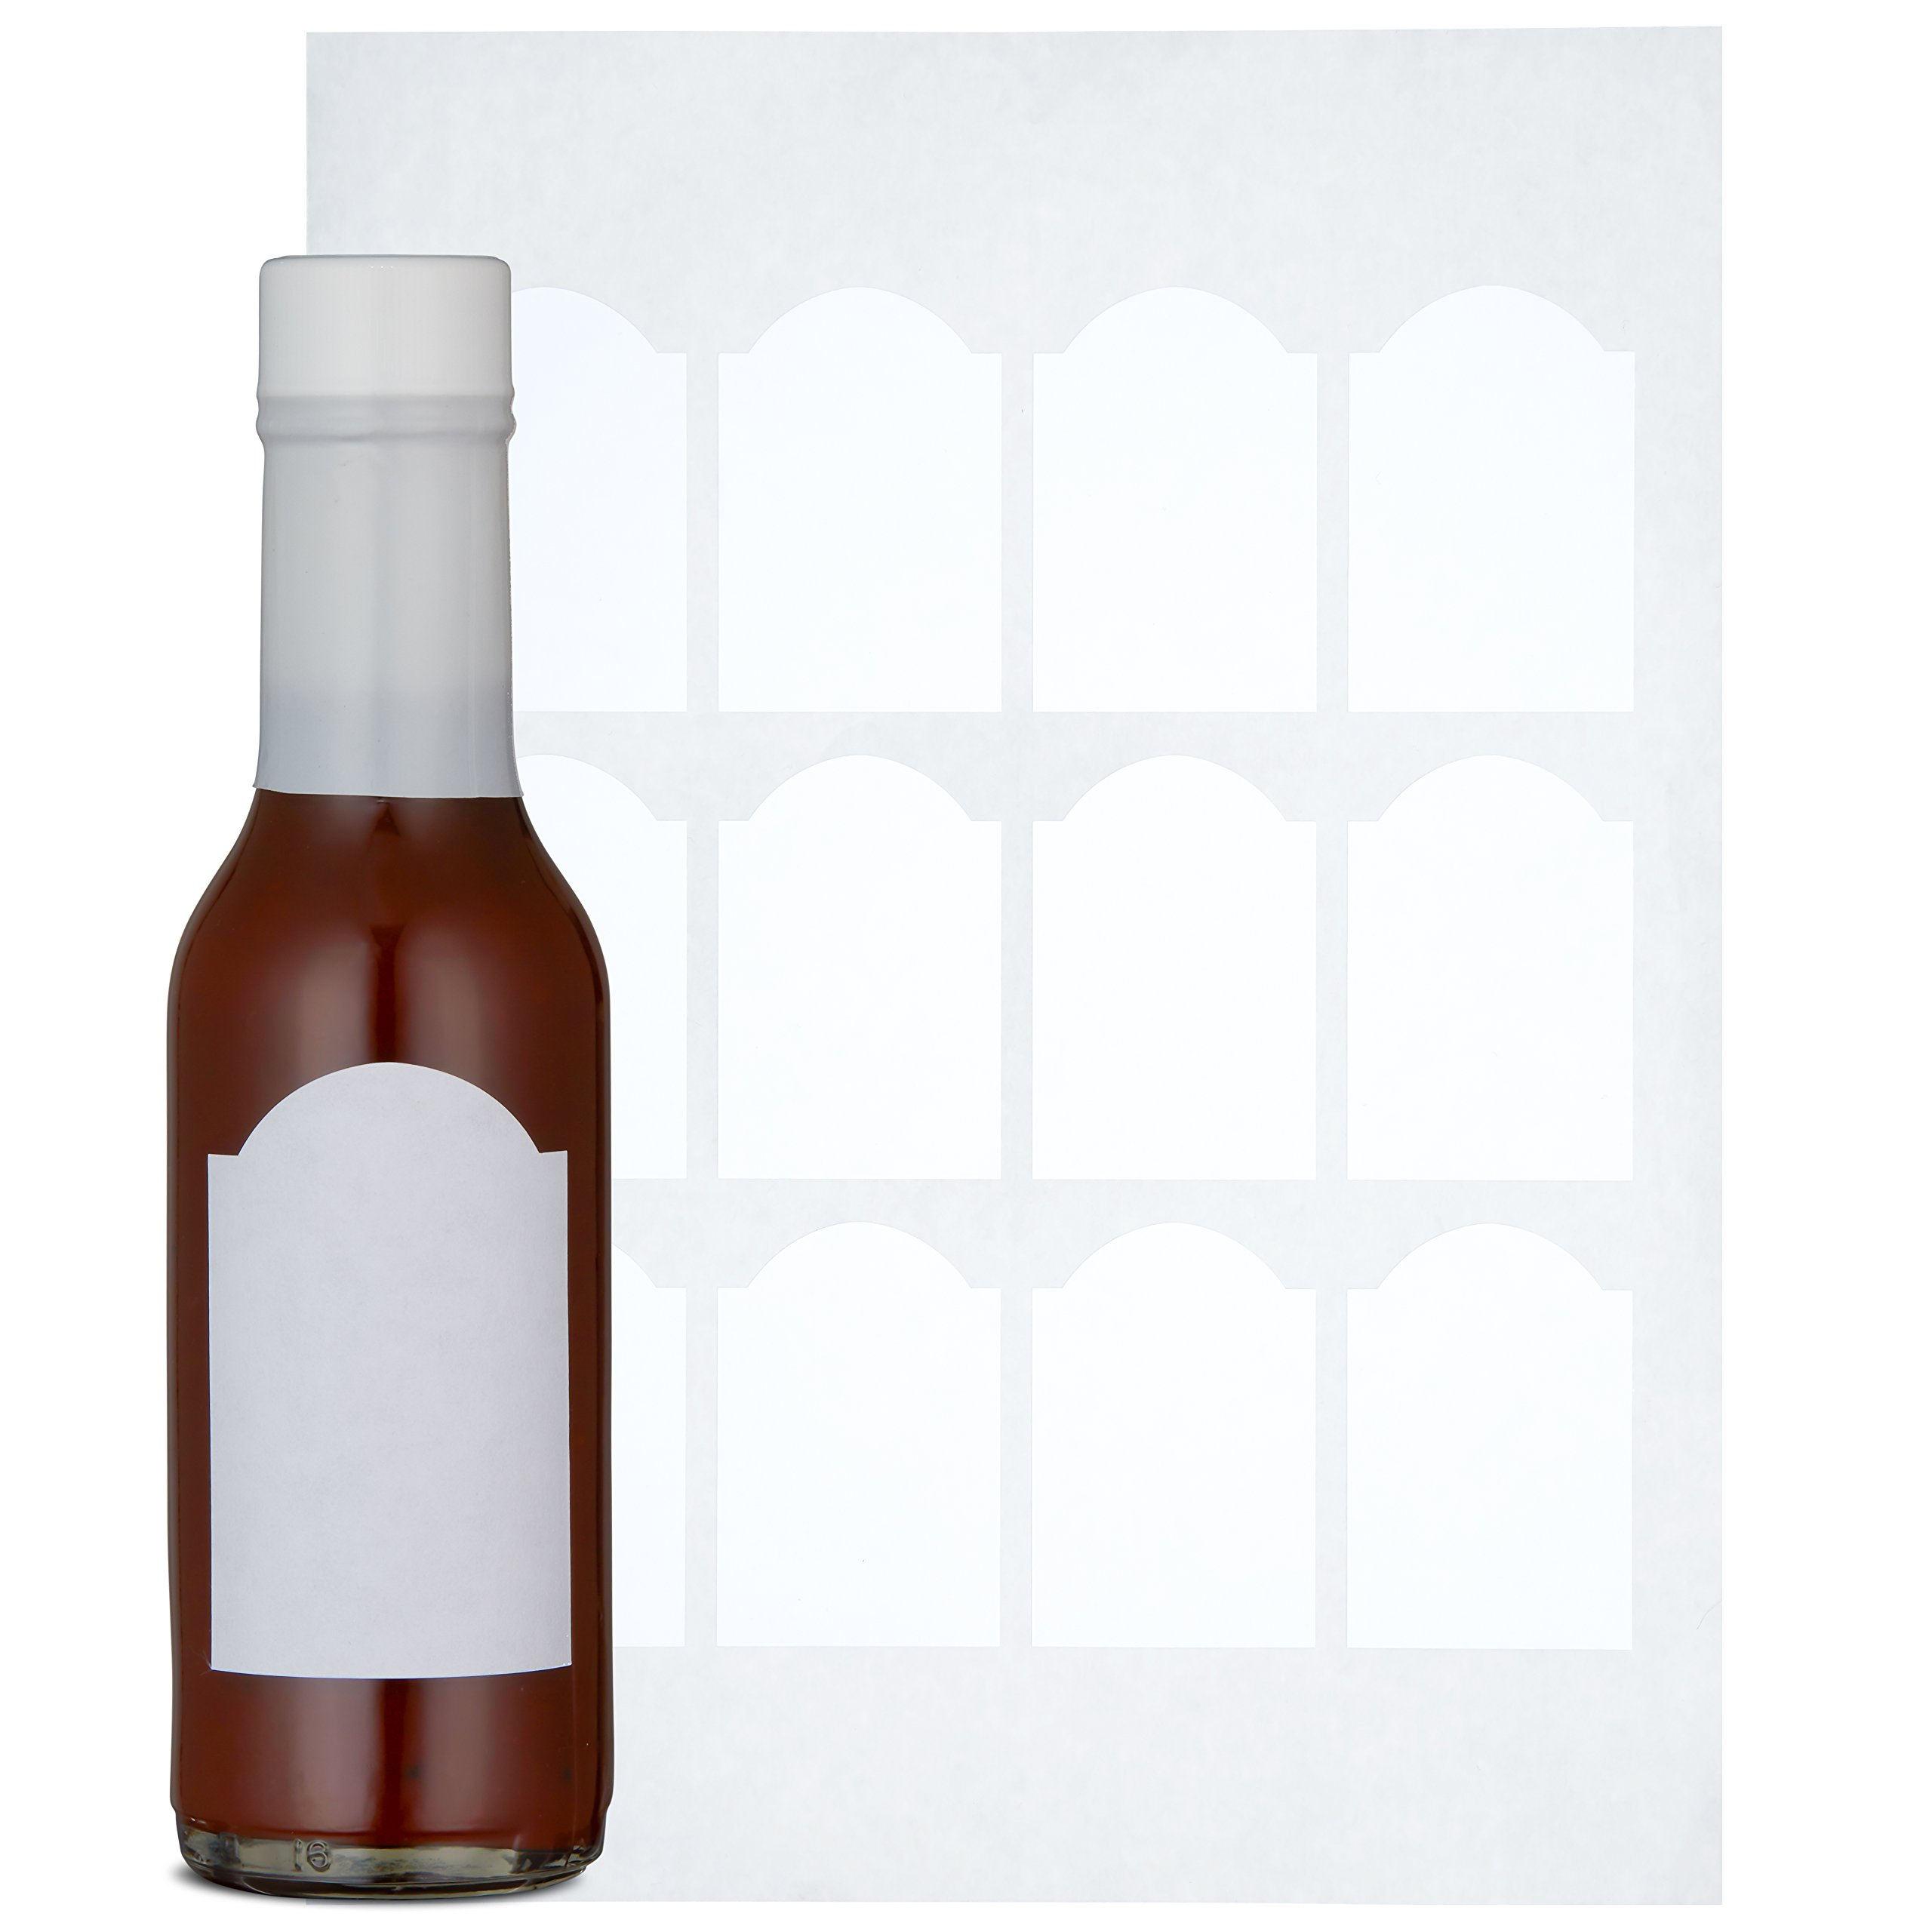 Quality Label Company Woozy Bottle Labels - 120 Blank Hot Sauce Labels, Perfect Size For 5oz Bottles.